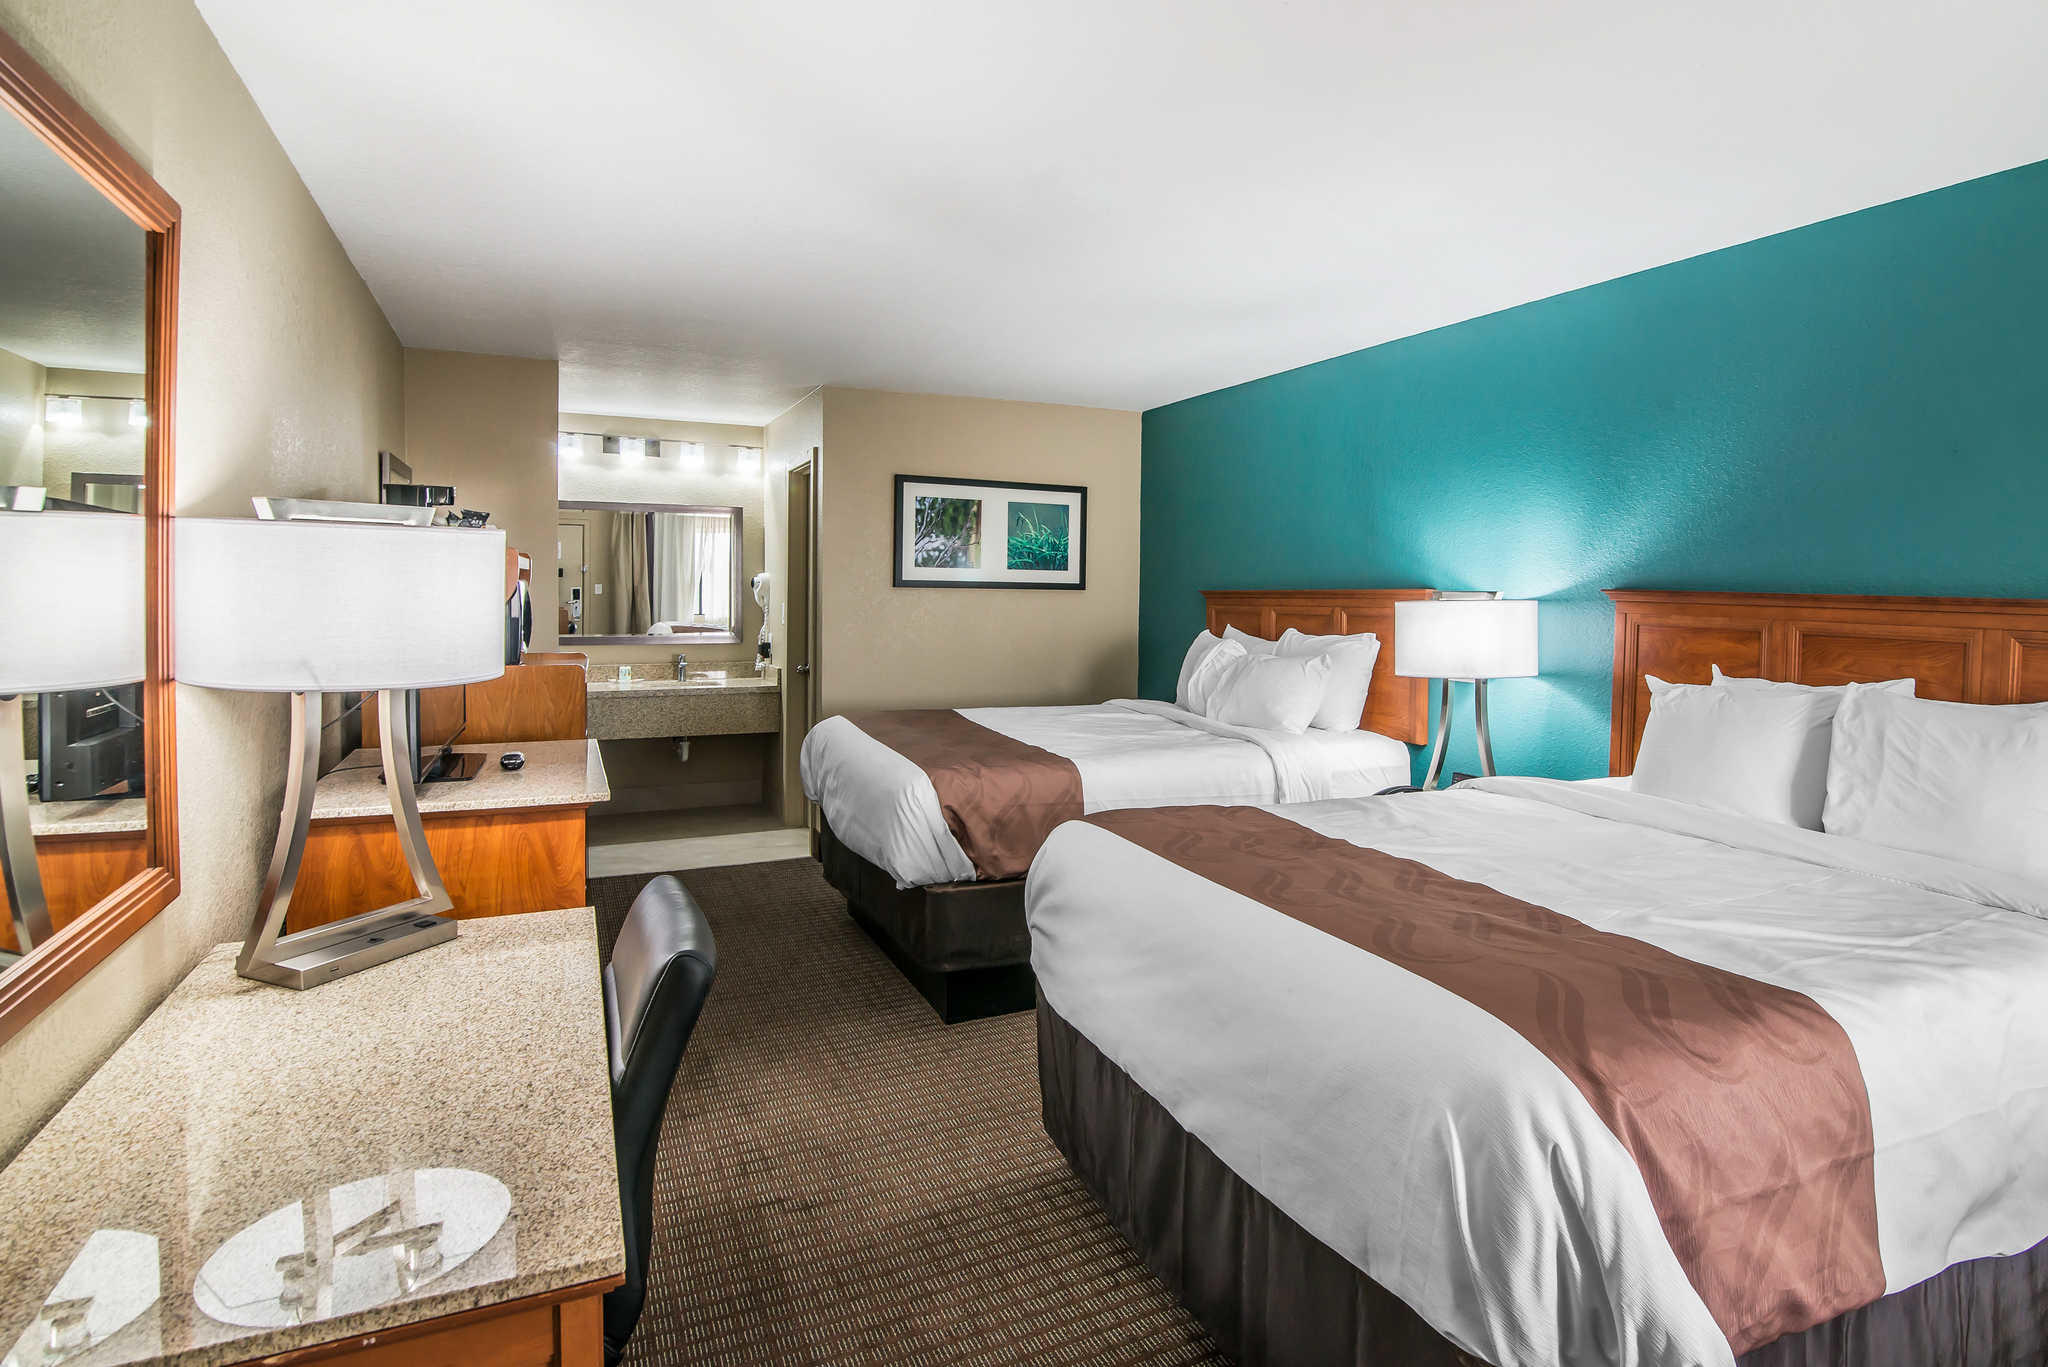 Quality Inn & Suites Near White Sands National Monument image 15